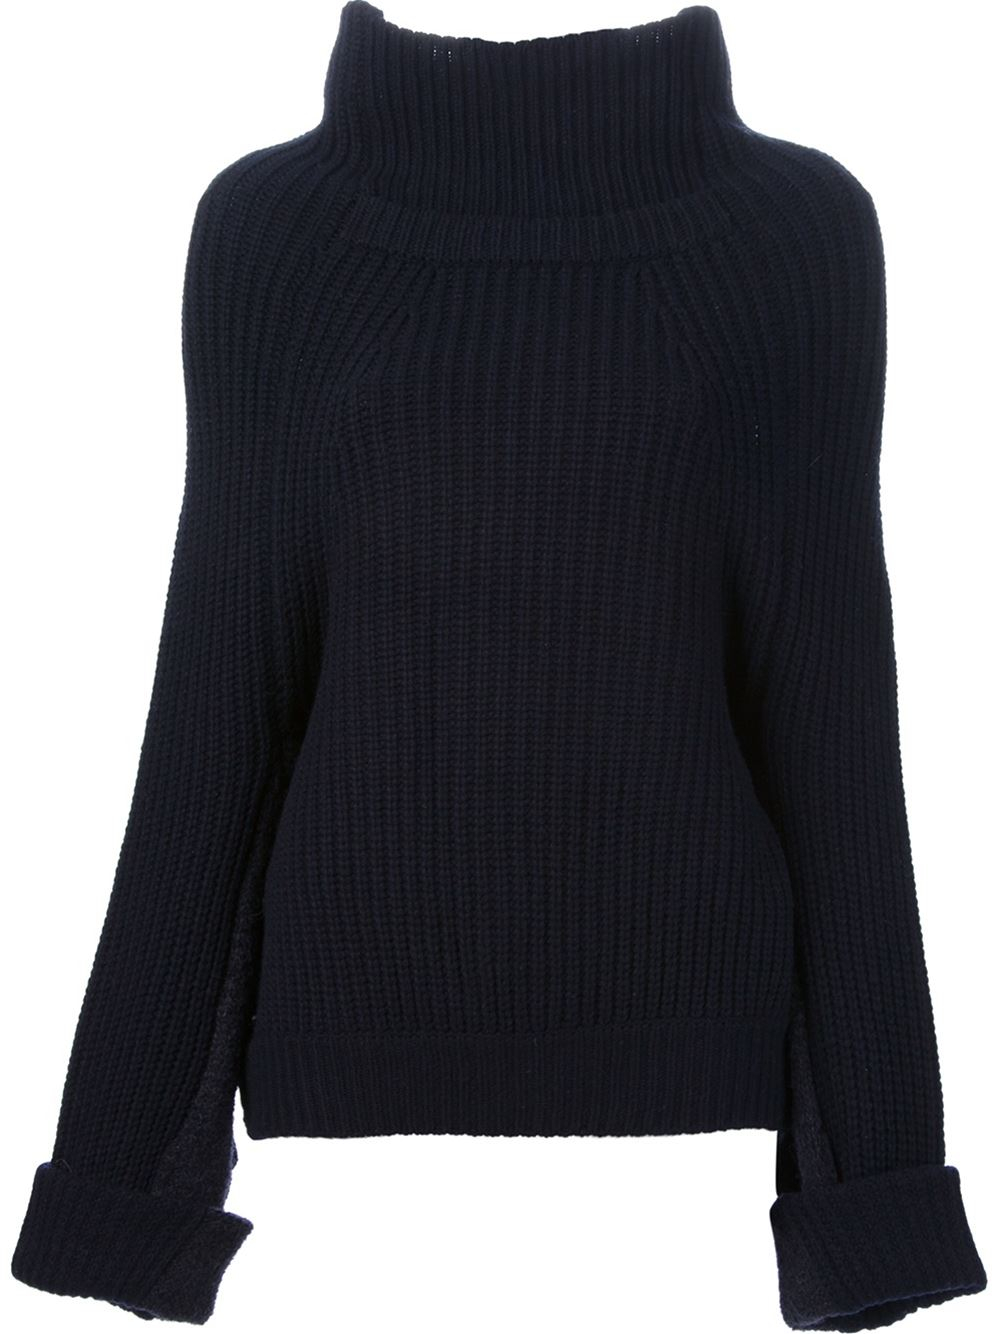 Toga pulla Oversize Turtleneck Sweater in Blue | Lyst